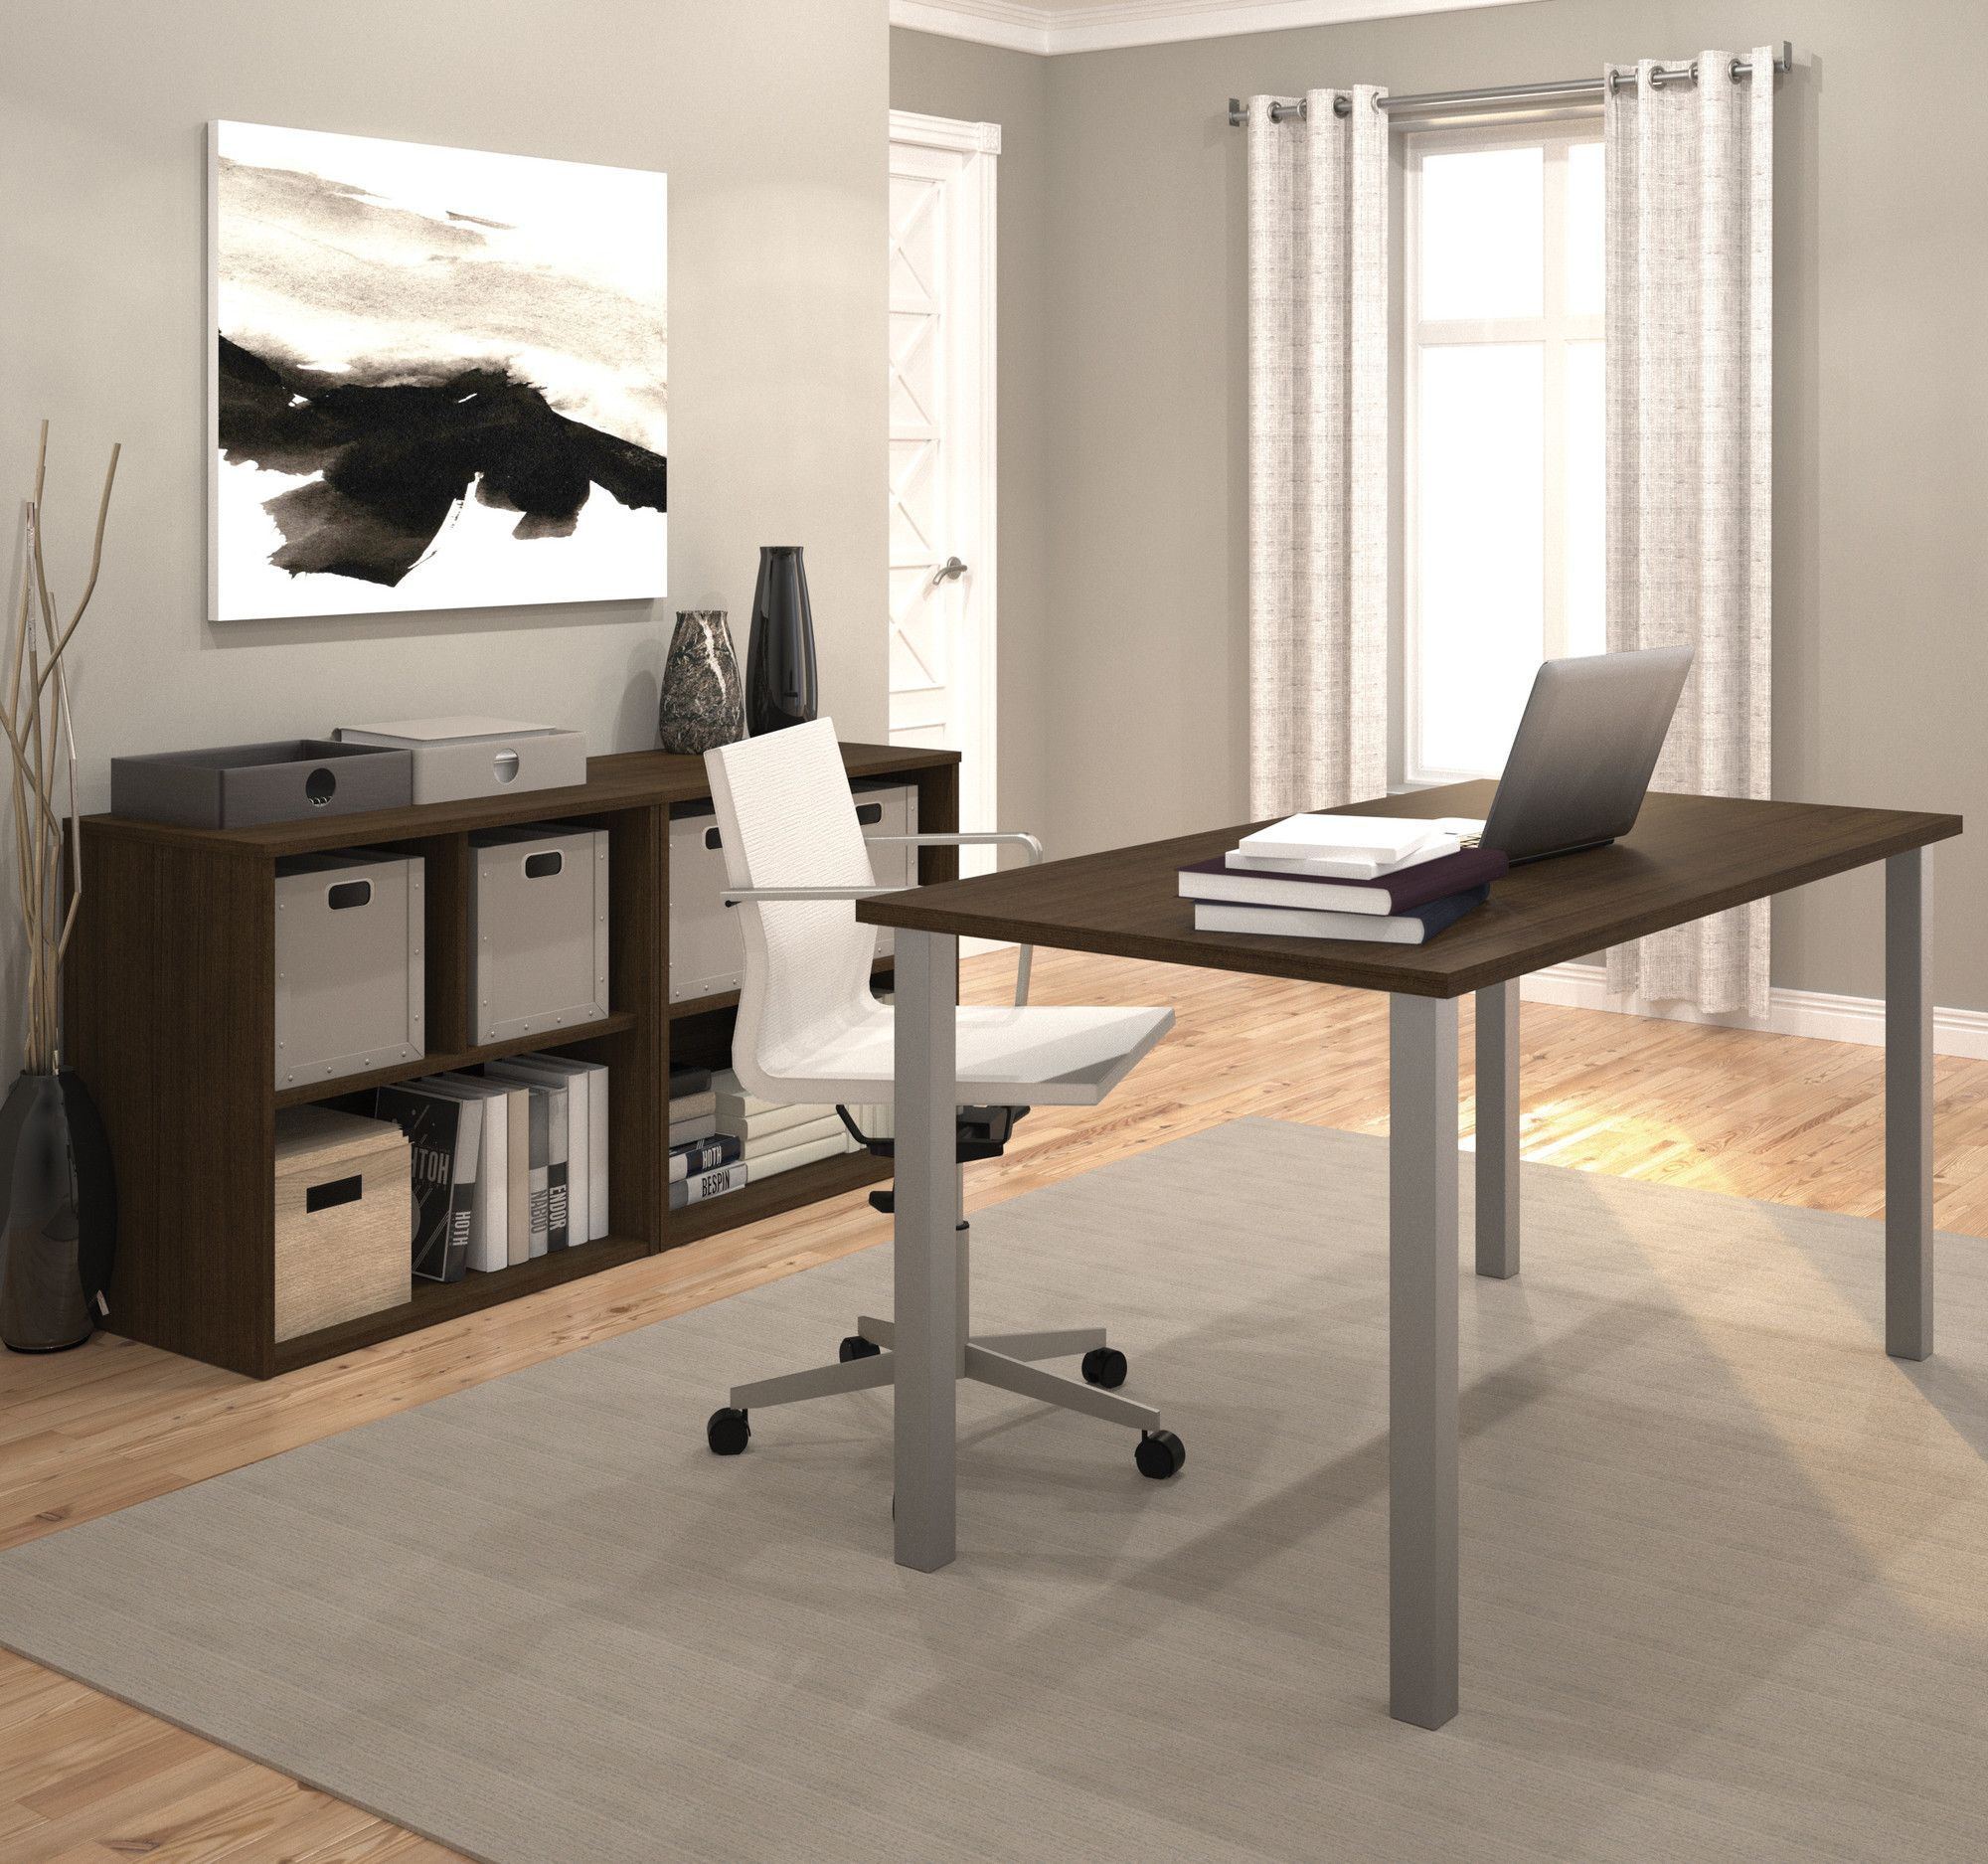 Luther 2 Piece U-Shaped Desk Office Suite | Products | Pinterest ...